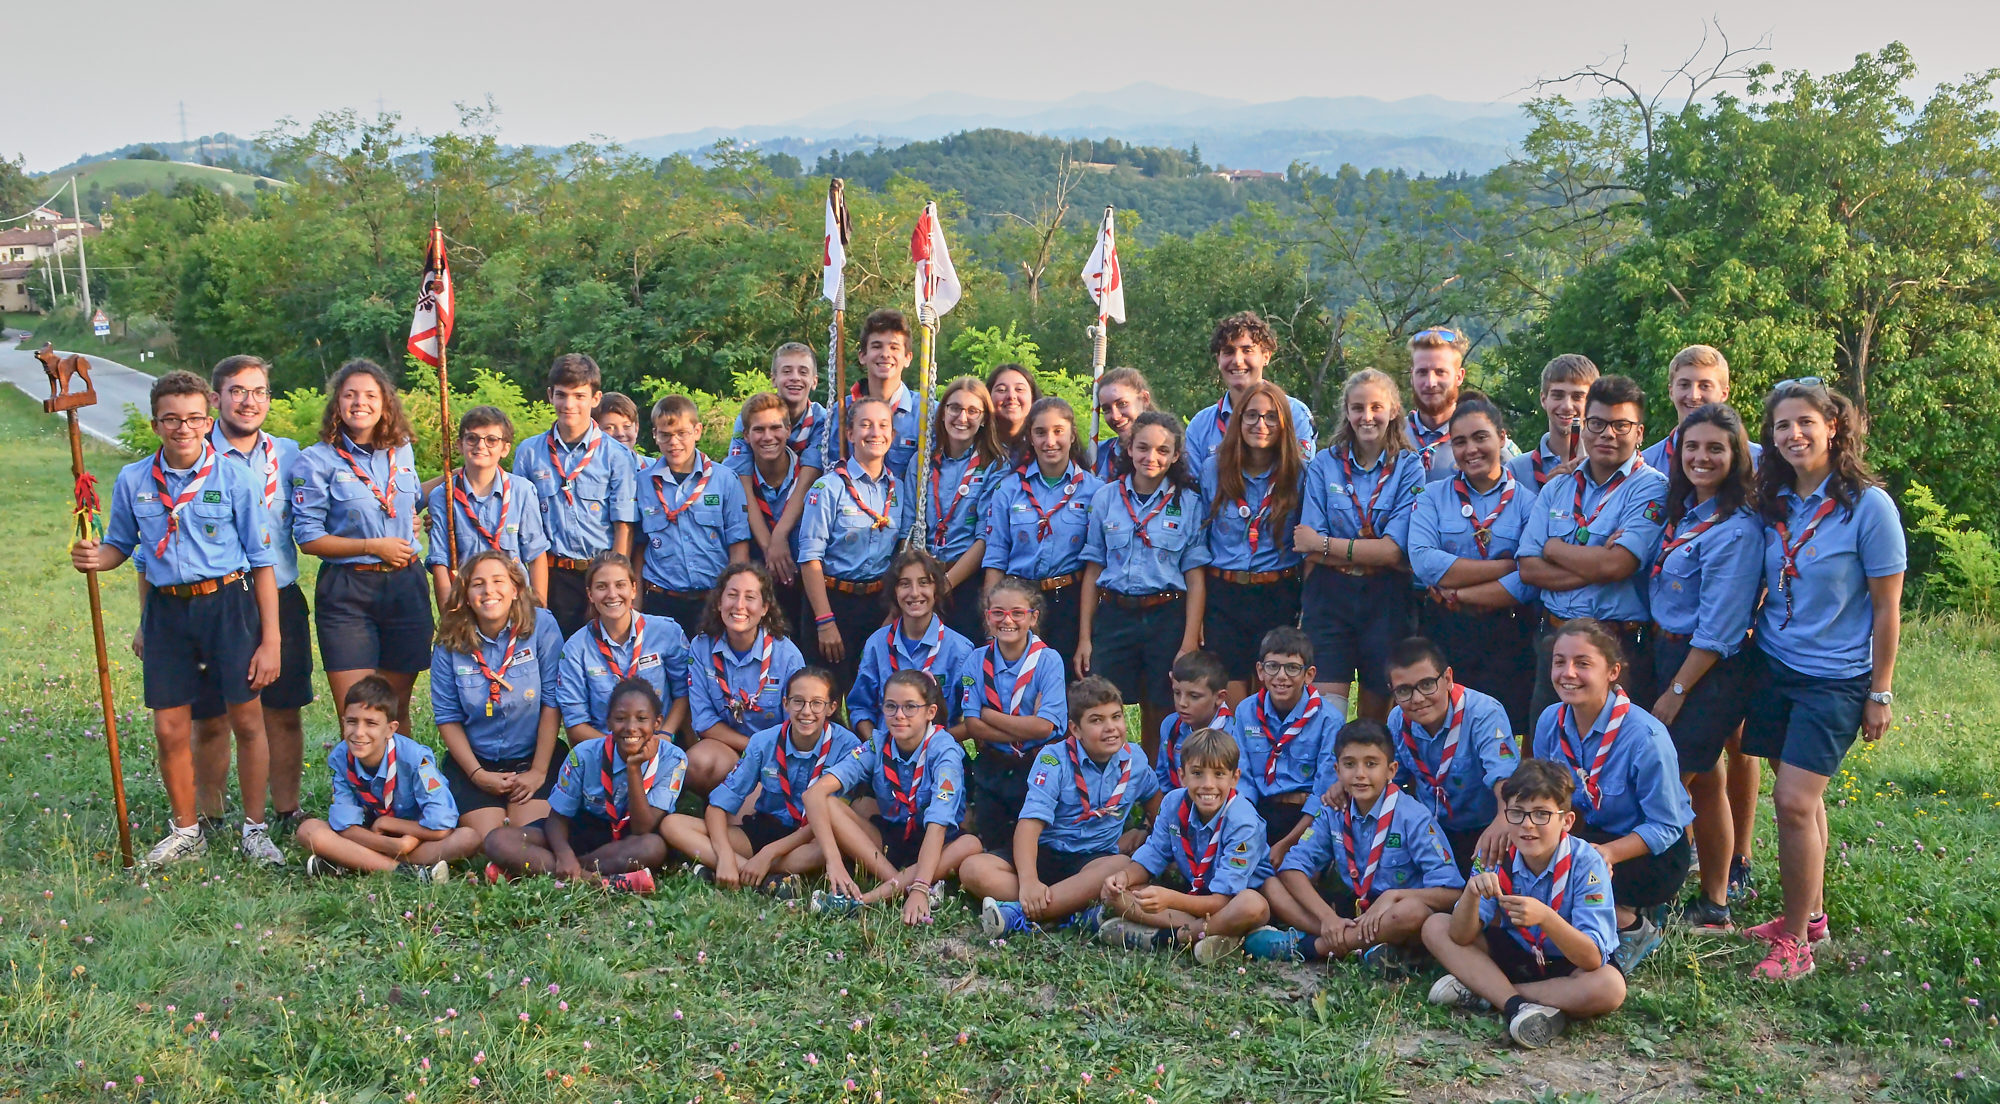 Gruppo Scout Settimo Torinese 1